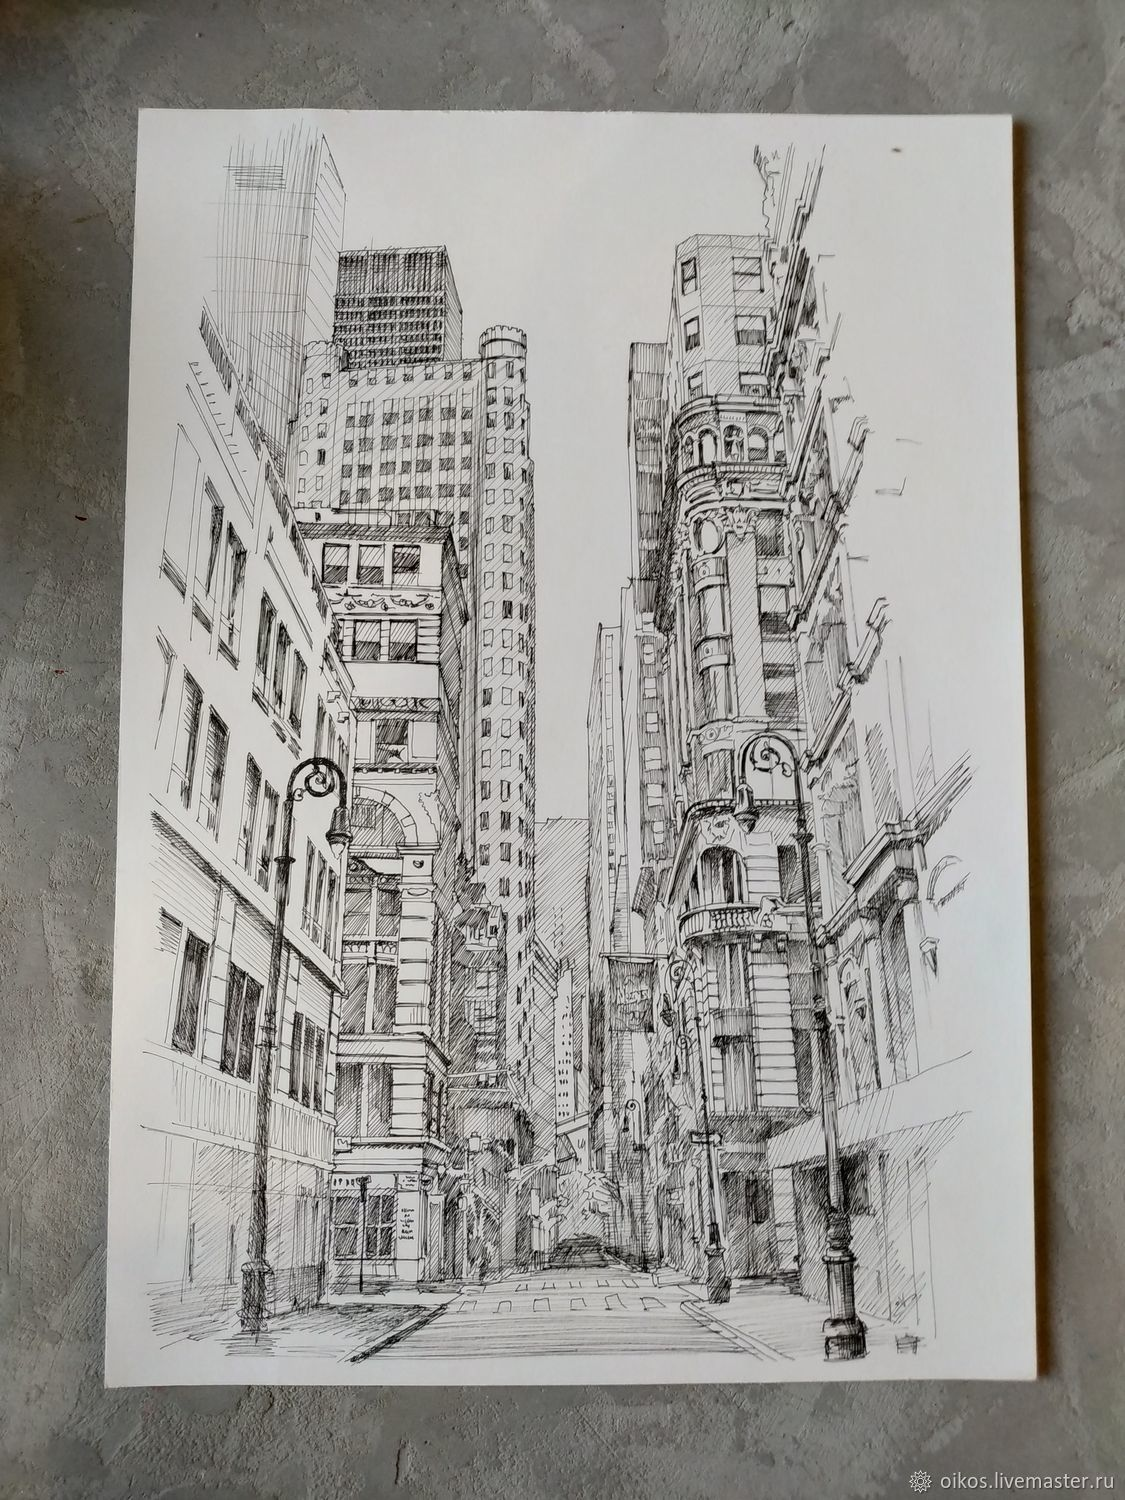 The picture of urban landscape pattern. Cities of the world drawing streets of America, Pictures, St. Petersburg,  Фото №1